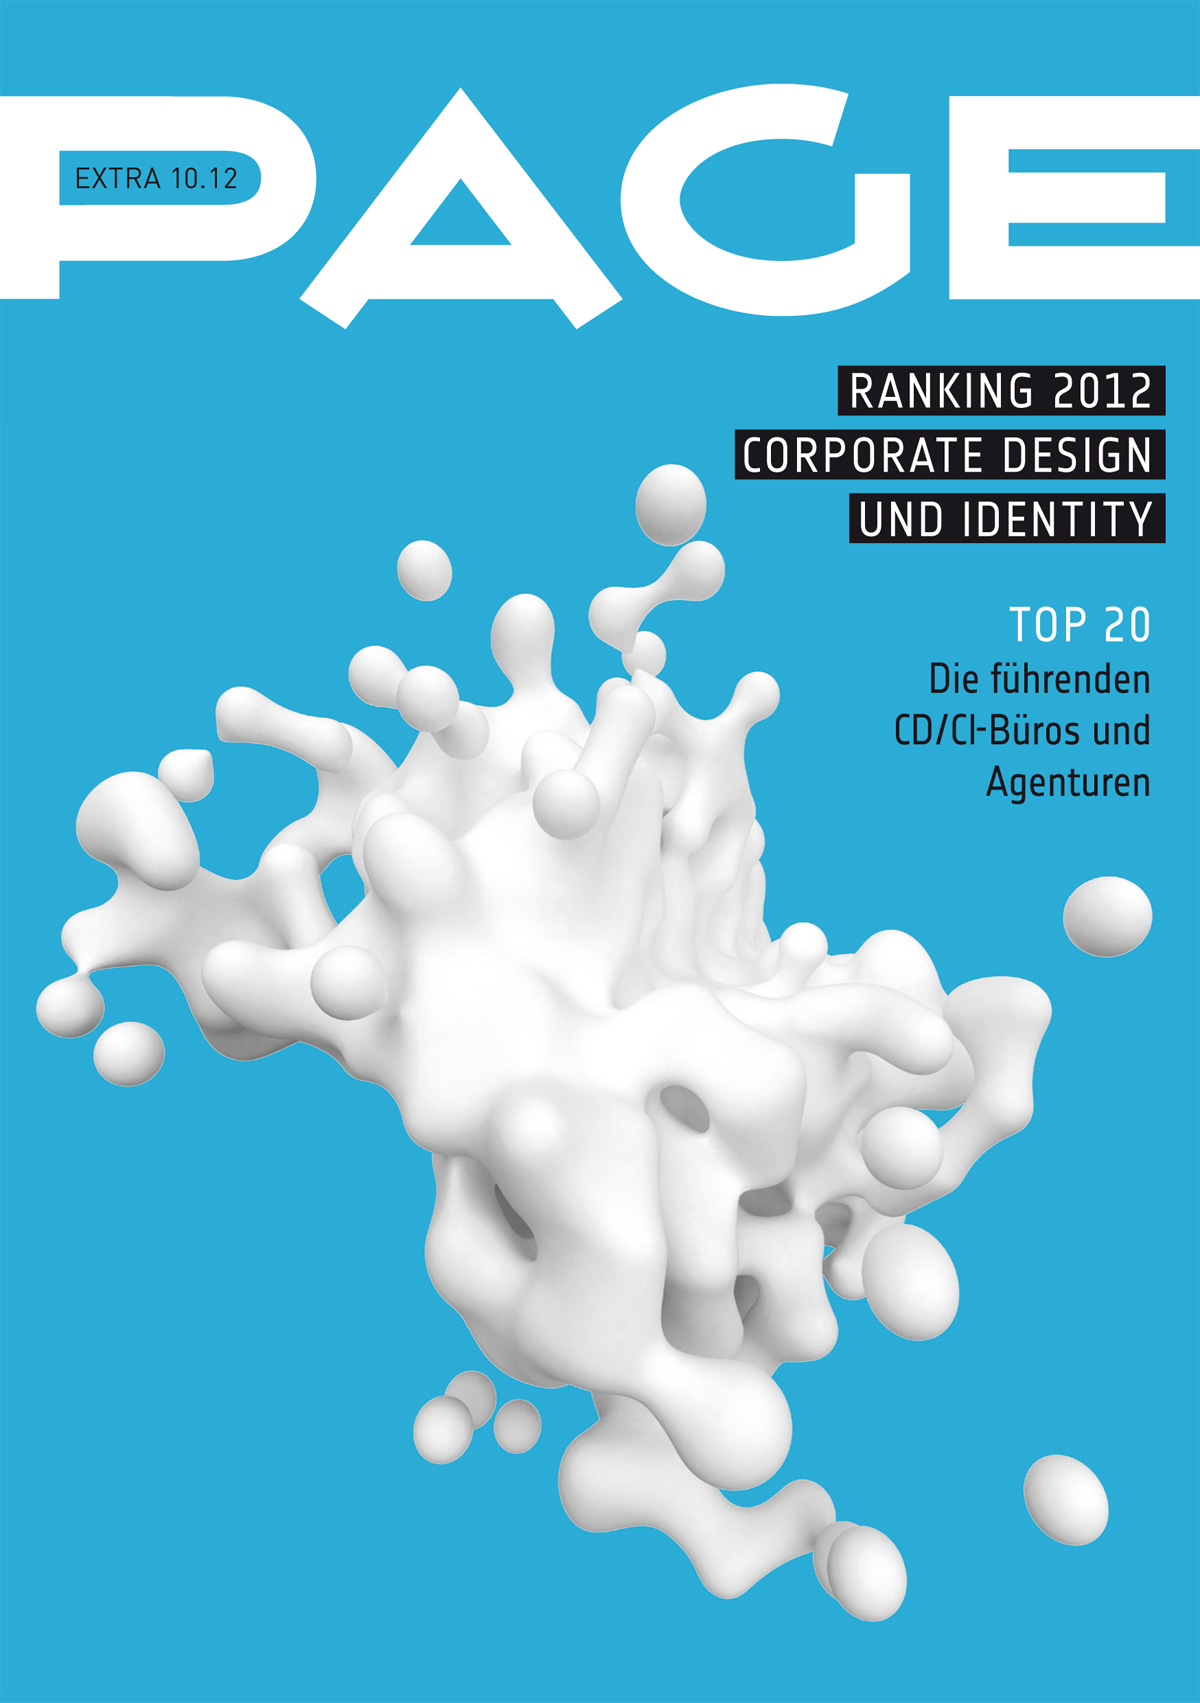 CD_CI_Ranking_2012